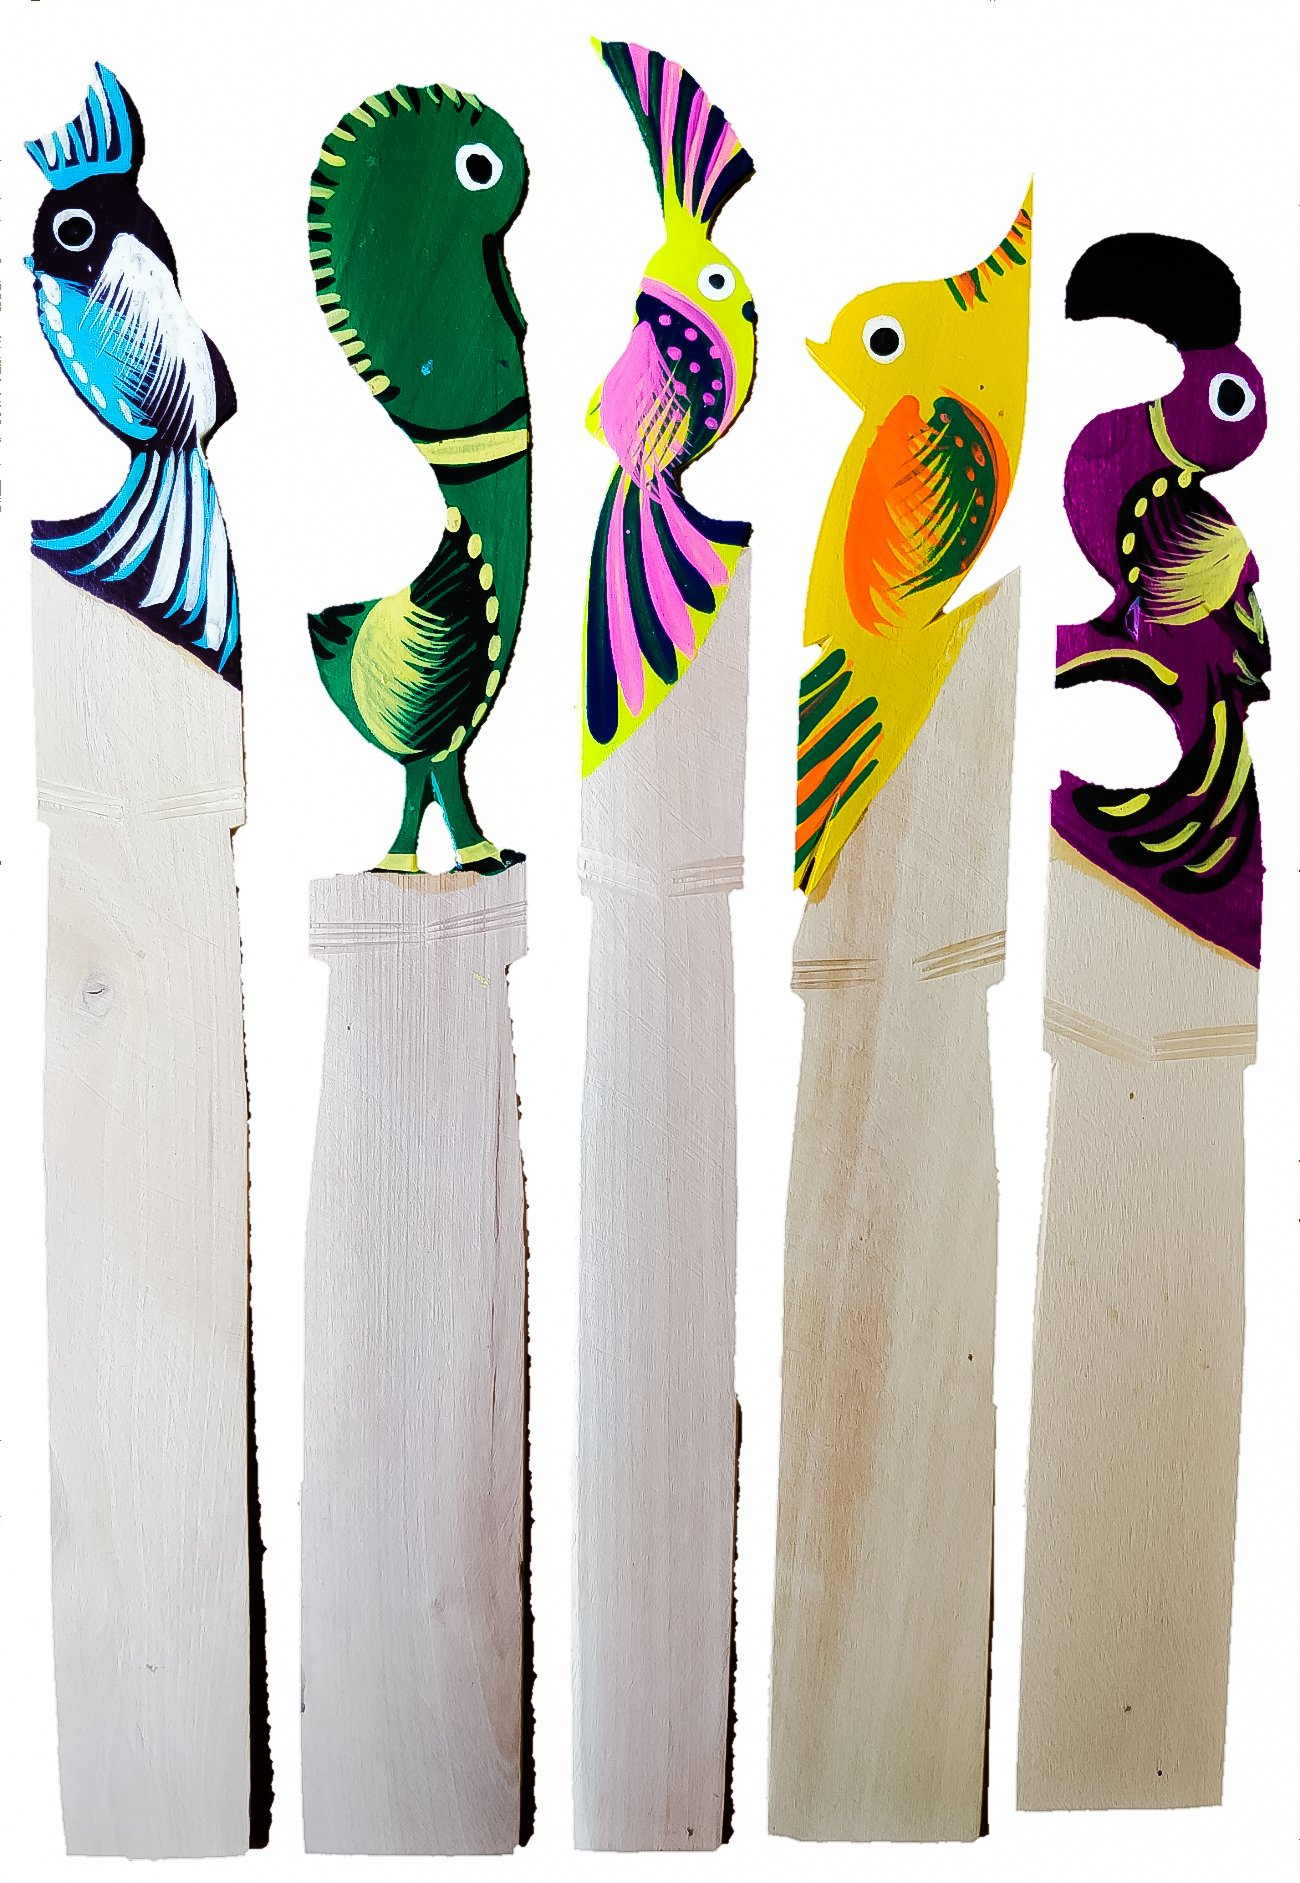 Unique Hand Carved Wooden Bookmarks 5 pcs Hand Painted Mexican Street Art for School Home Office & Library